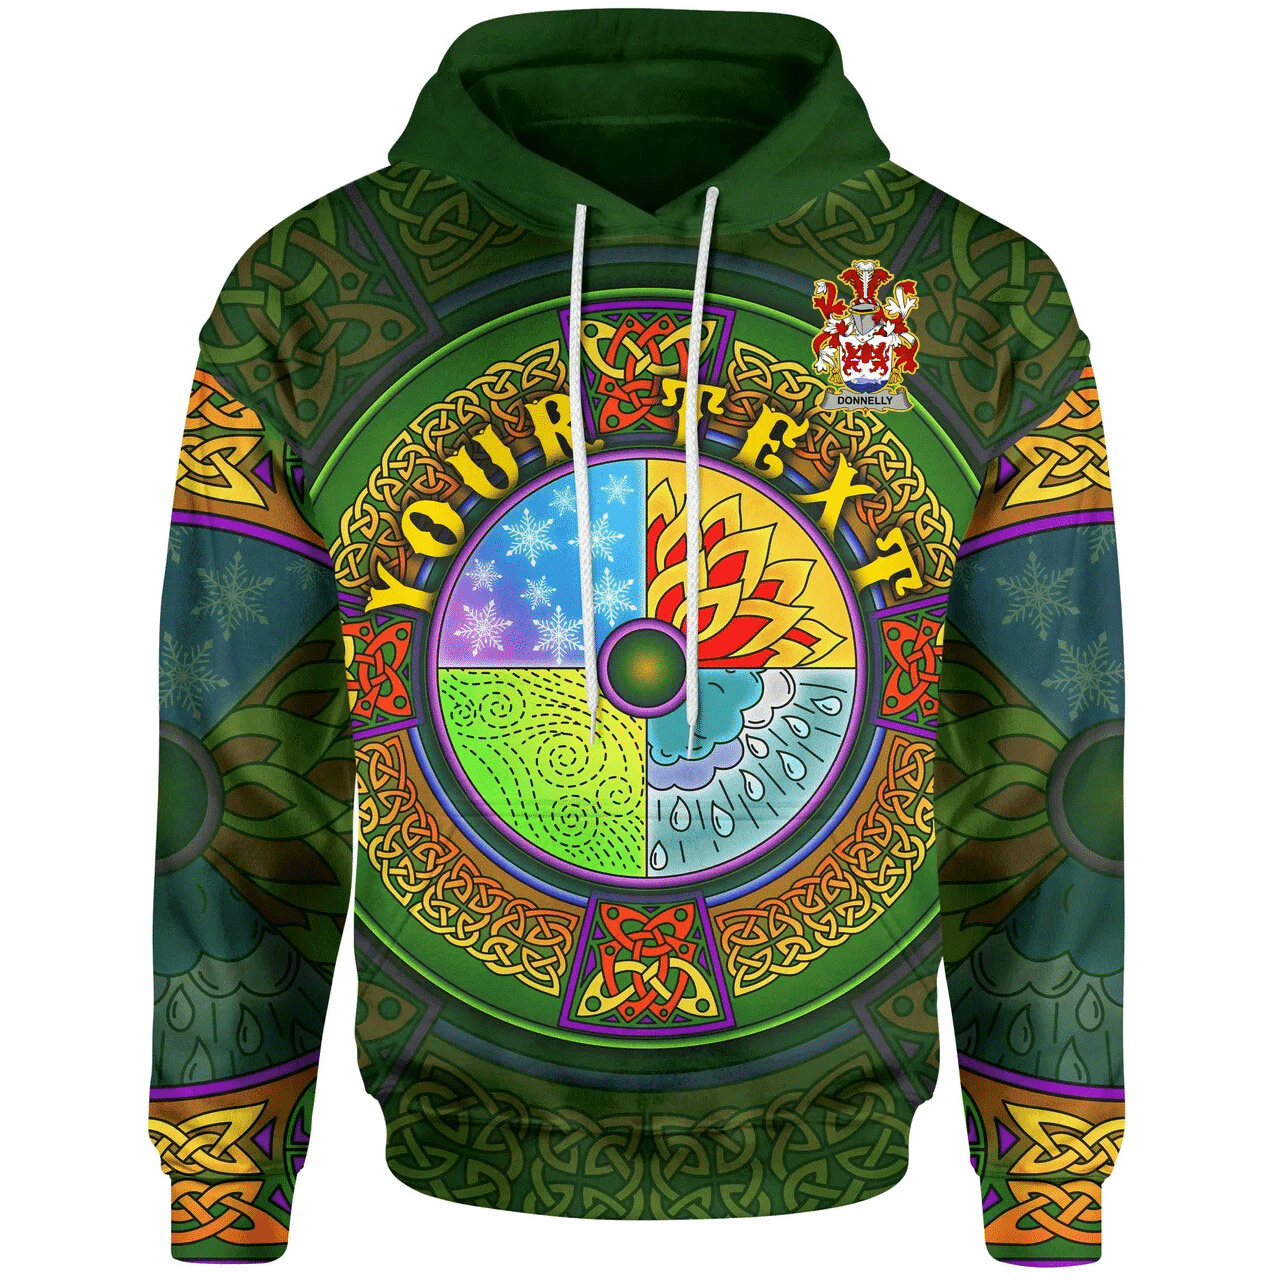 (Custom) 1stIreland Ireland Hoodie - Donnelly or O'Donnelly Irish Family Crest Hoodie - Celtic Elements A7